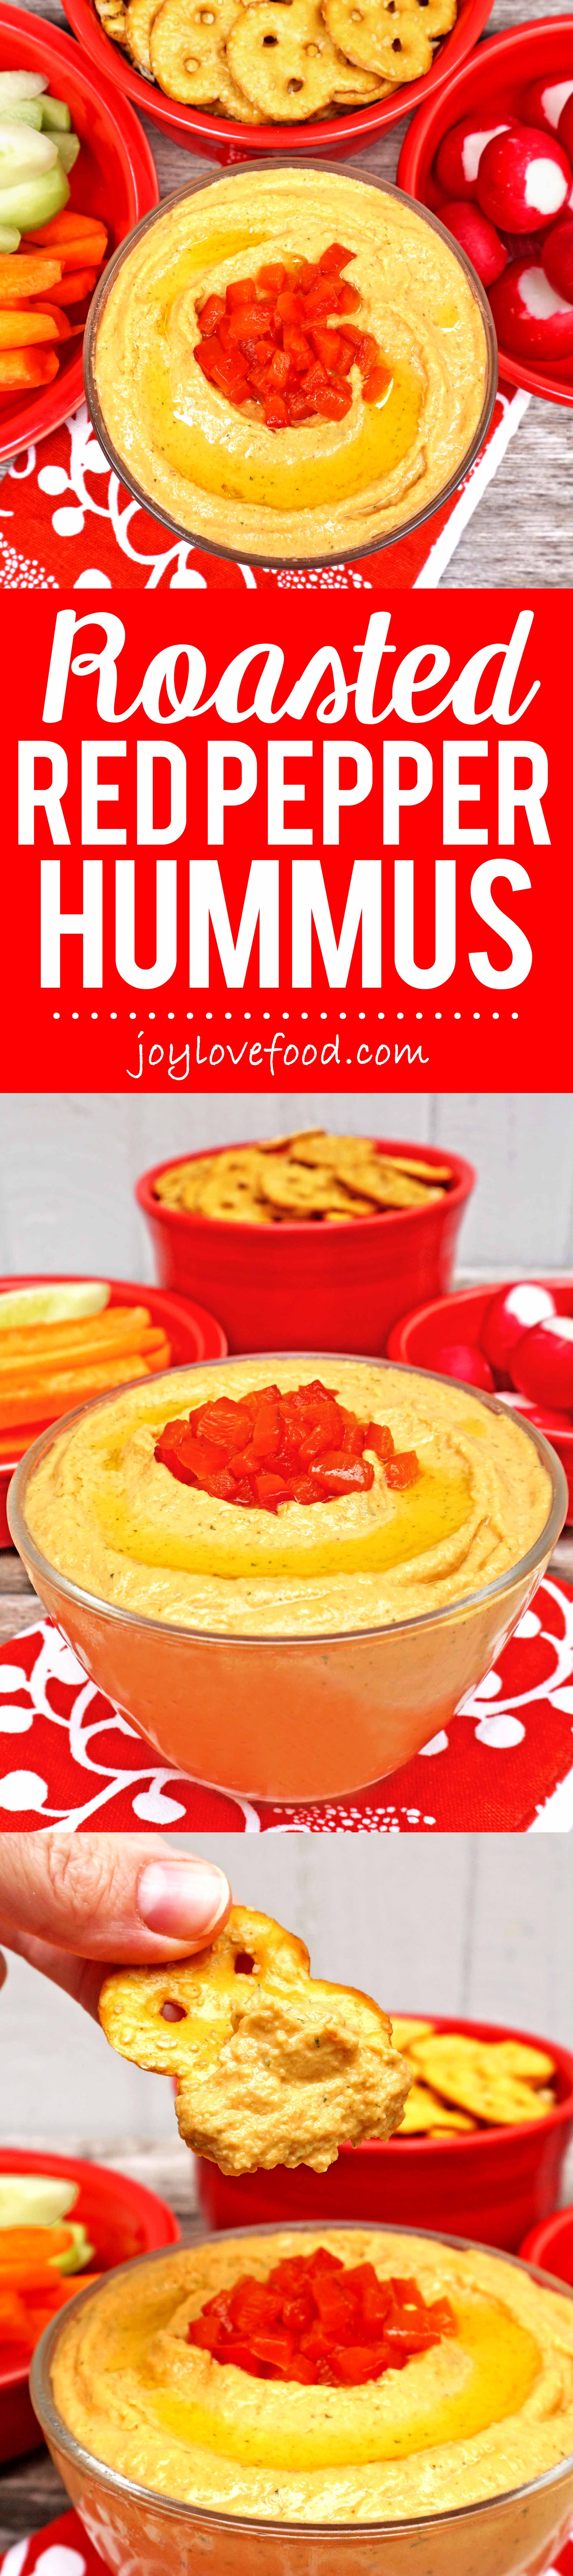 Roasted Red Pepper Hummus - a delicious, creamy, flavorful dip ...